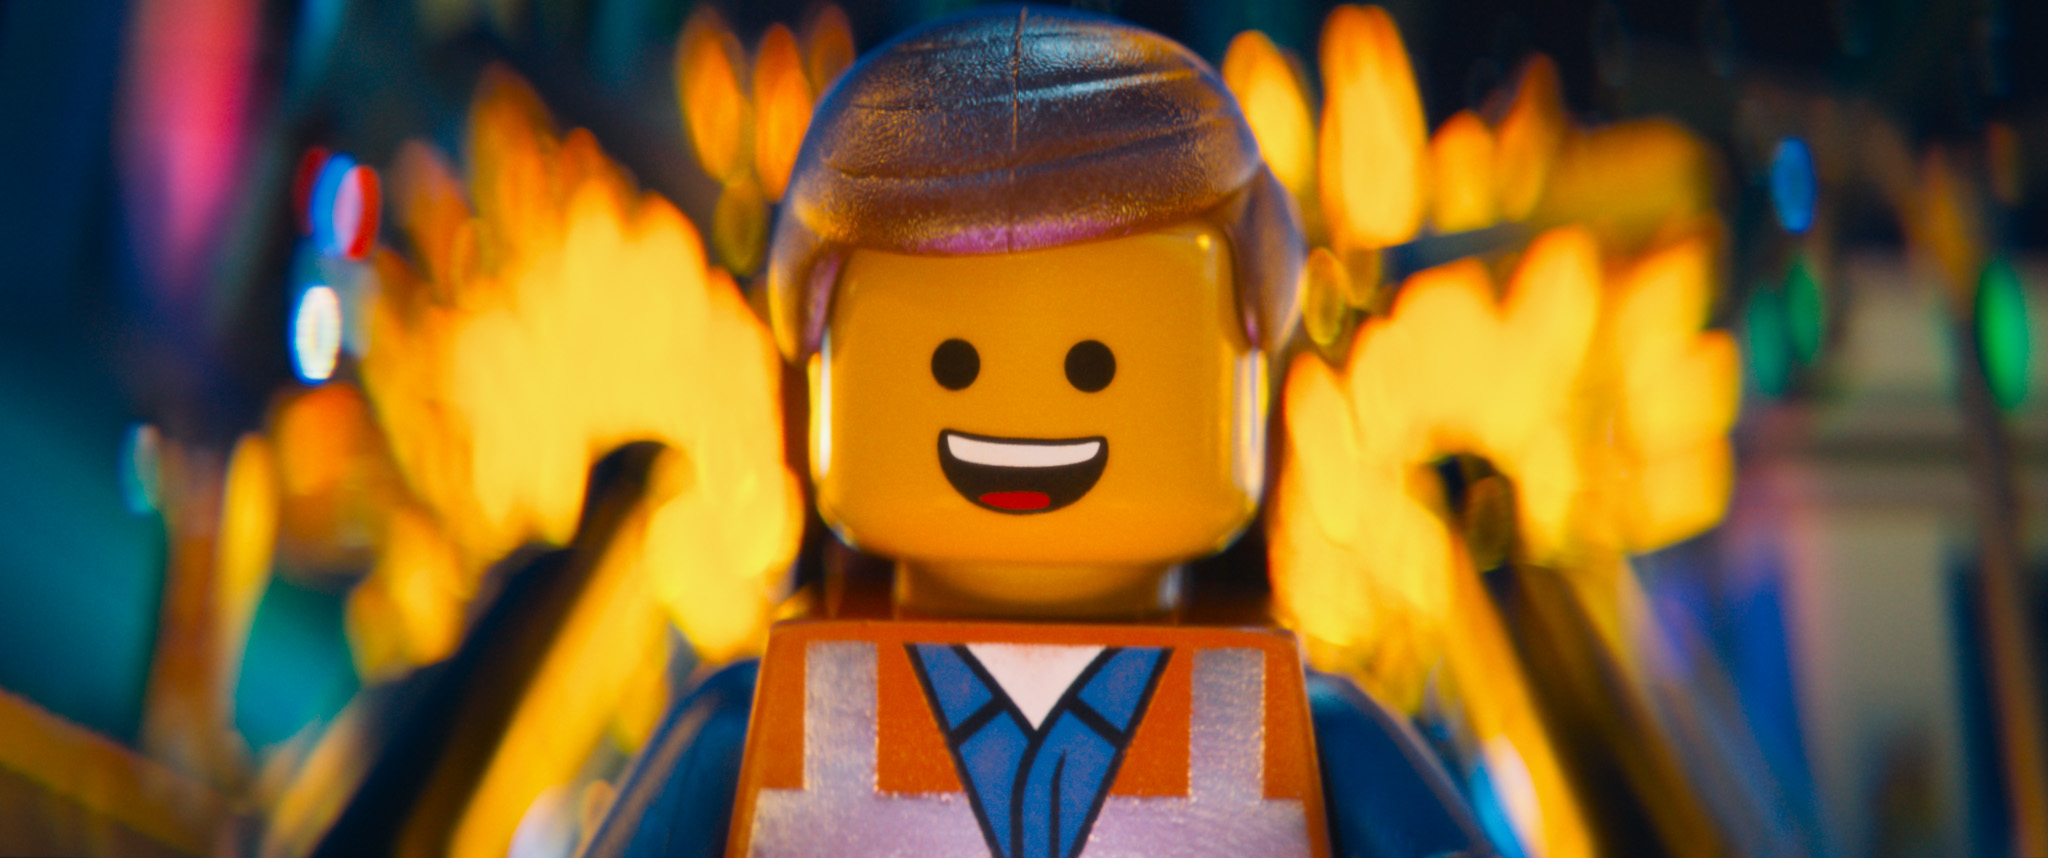 Lego Movie 21 New Featurette and Stills From The LEGO® Movie Released